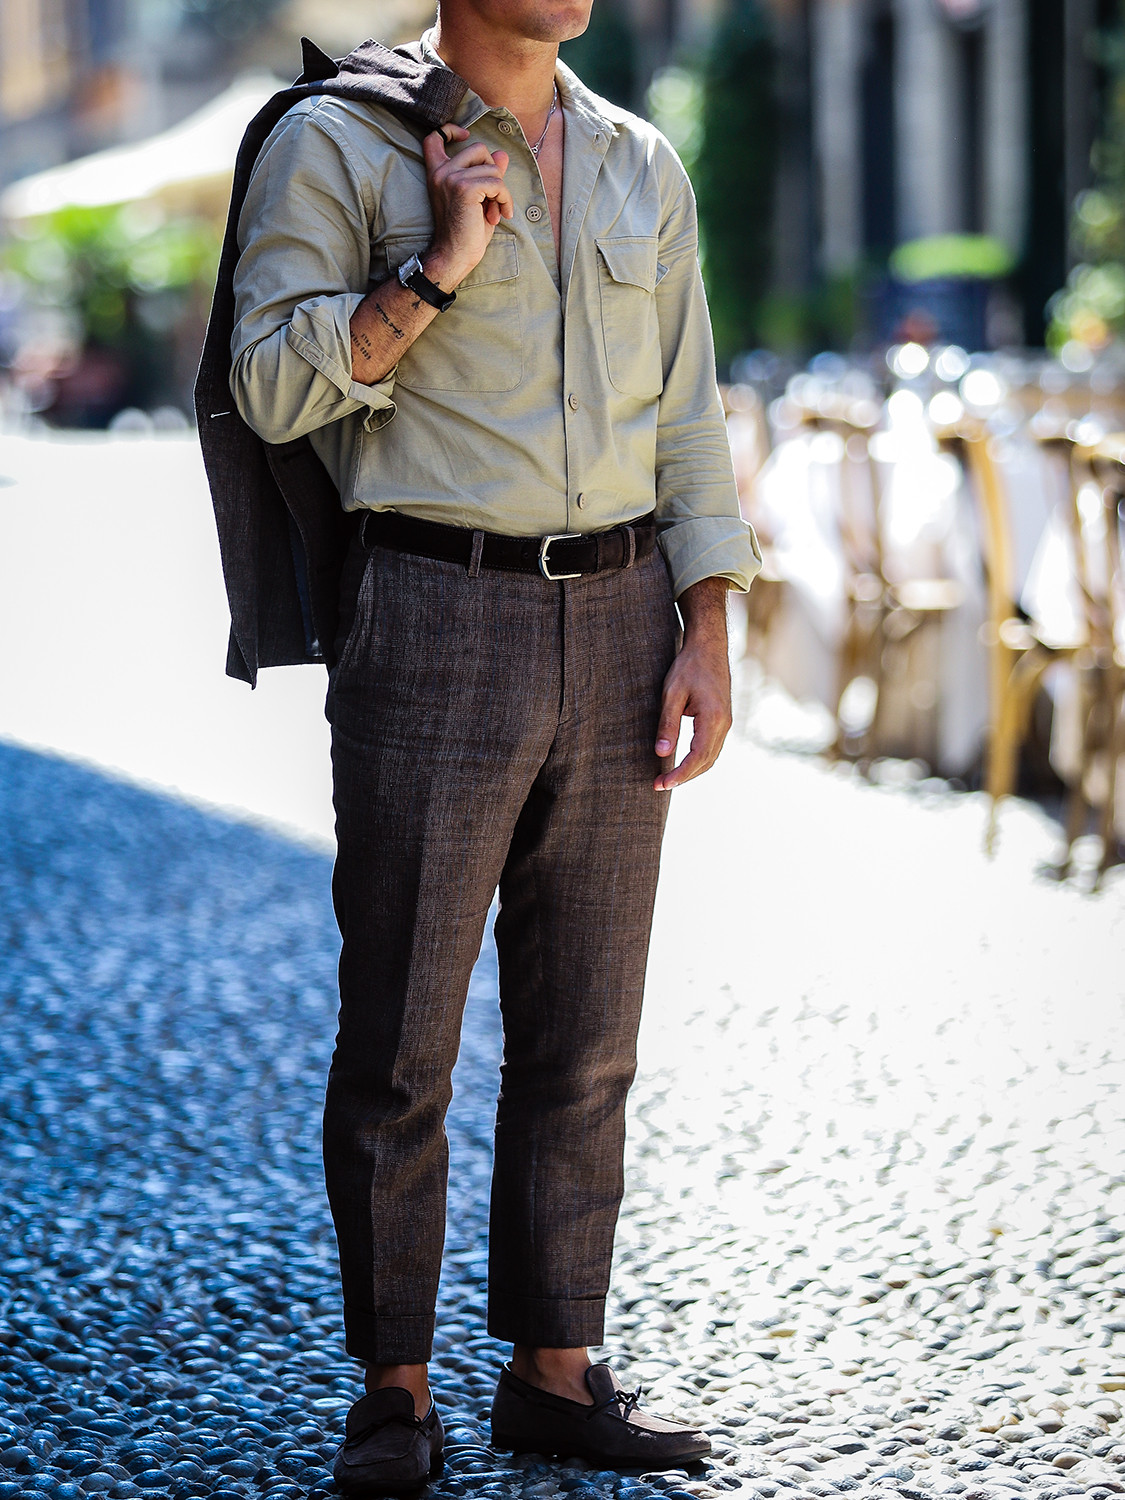 Men's outfit idea for 2021 with textured blazer, pale coloured casual shirt, brown plain formal trousers, brown loafers. Suitable for spring, summer and autumn.